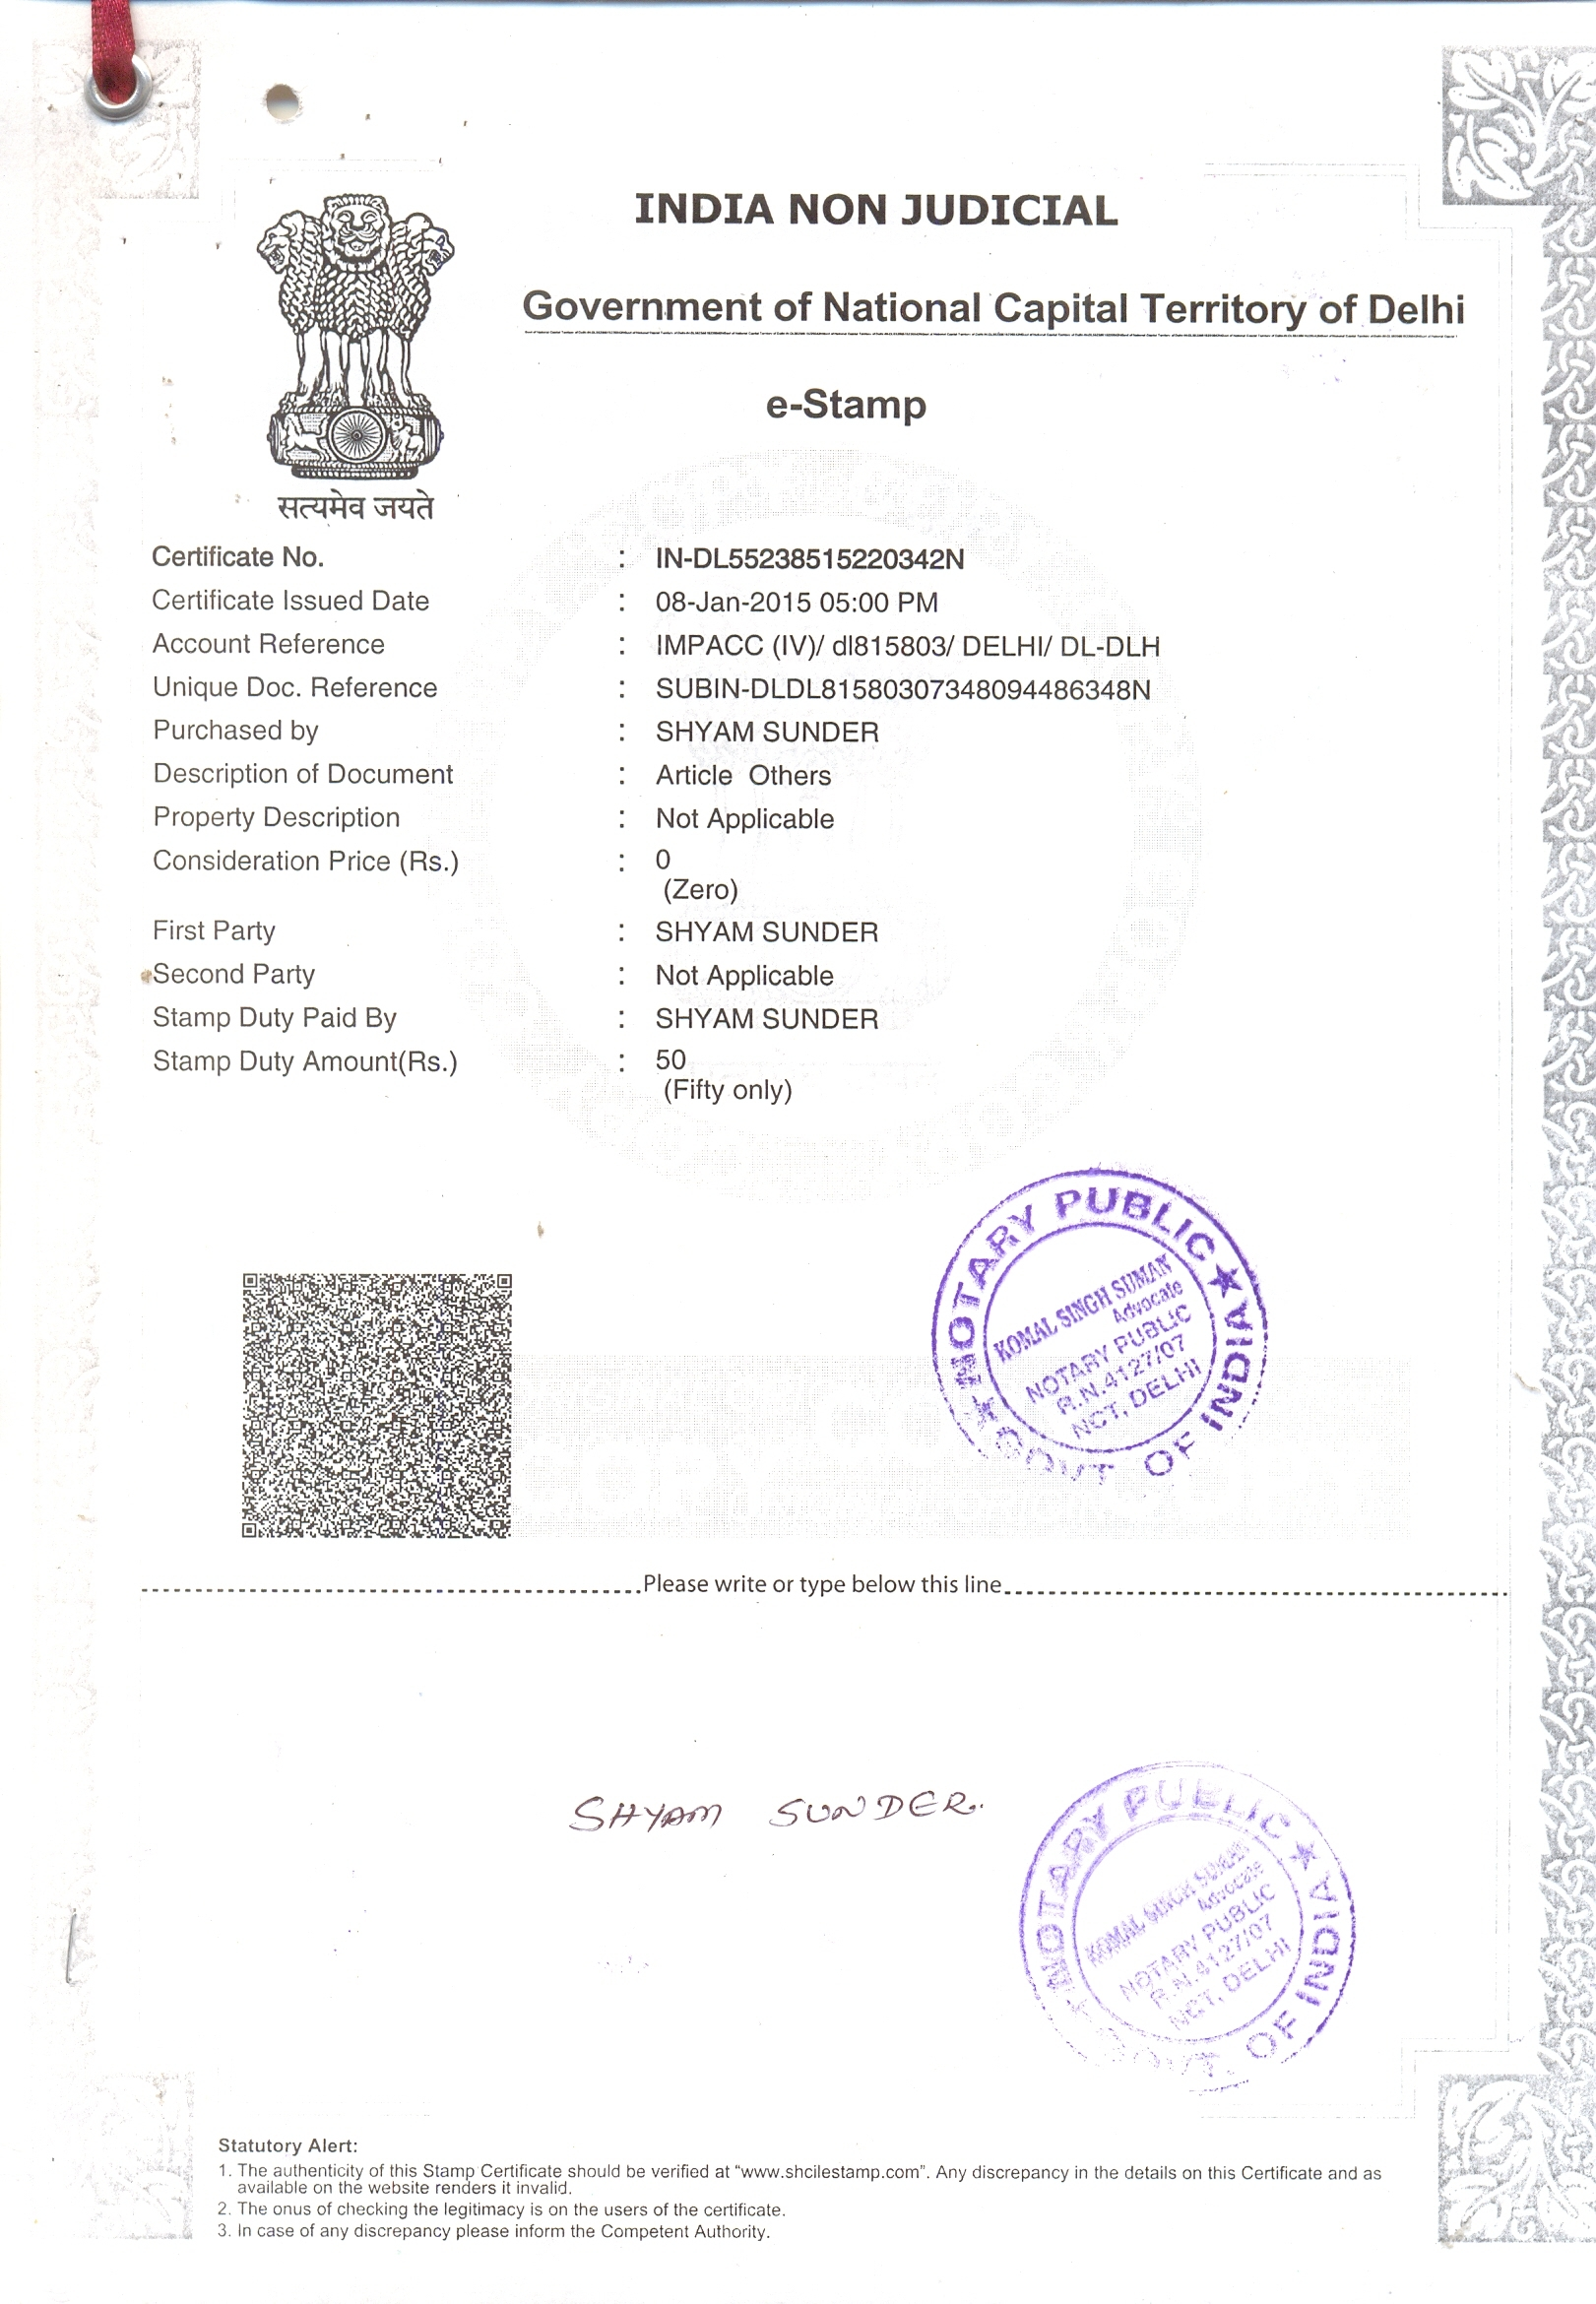 Birth certificate template india choice image certificate design birth certificate template india gallery certificate design and birth certificate sample form images certificate design and yadclub Image collections